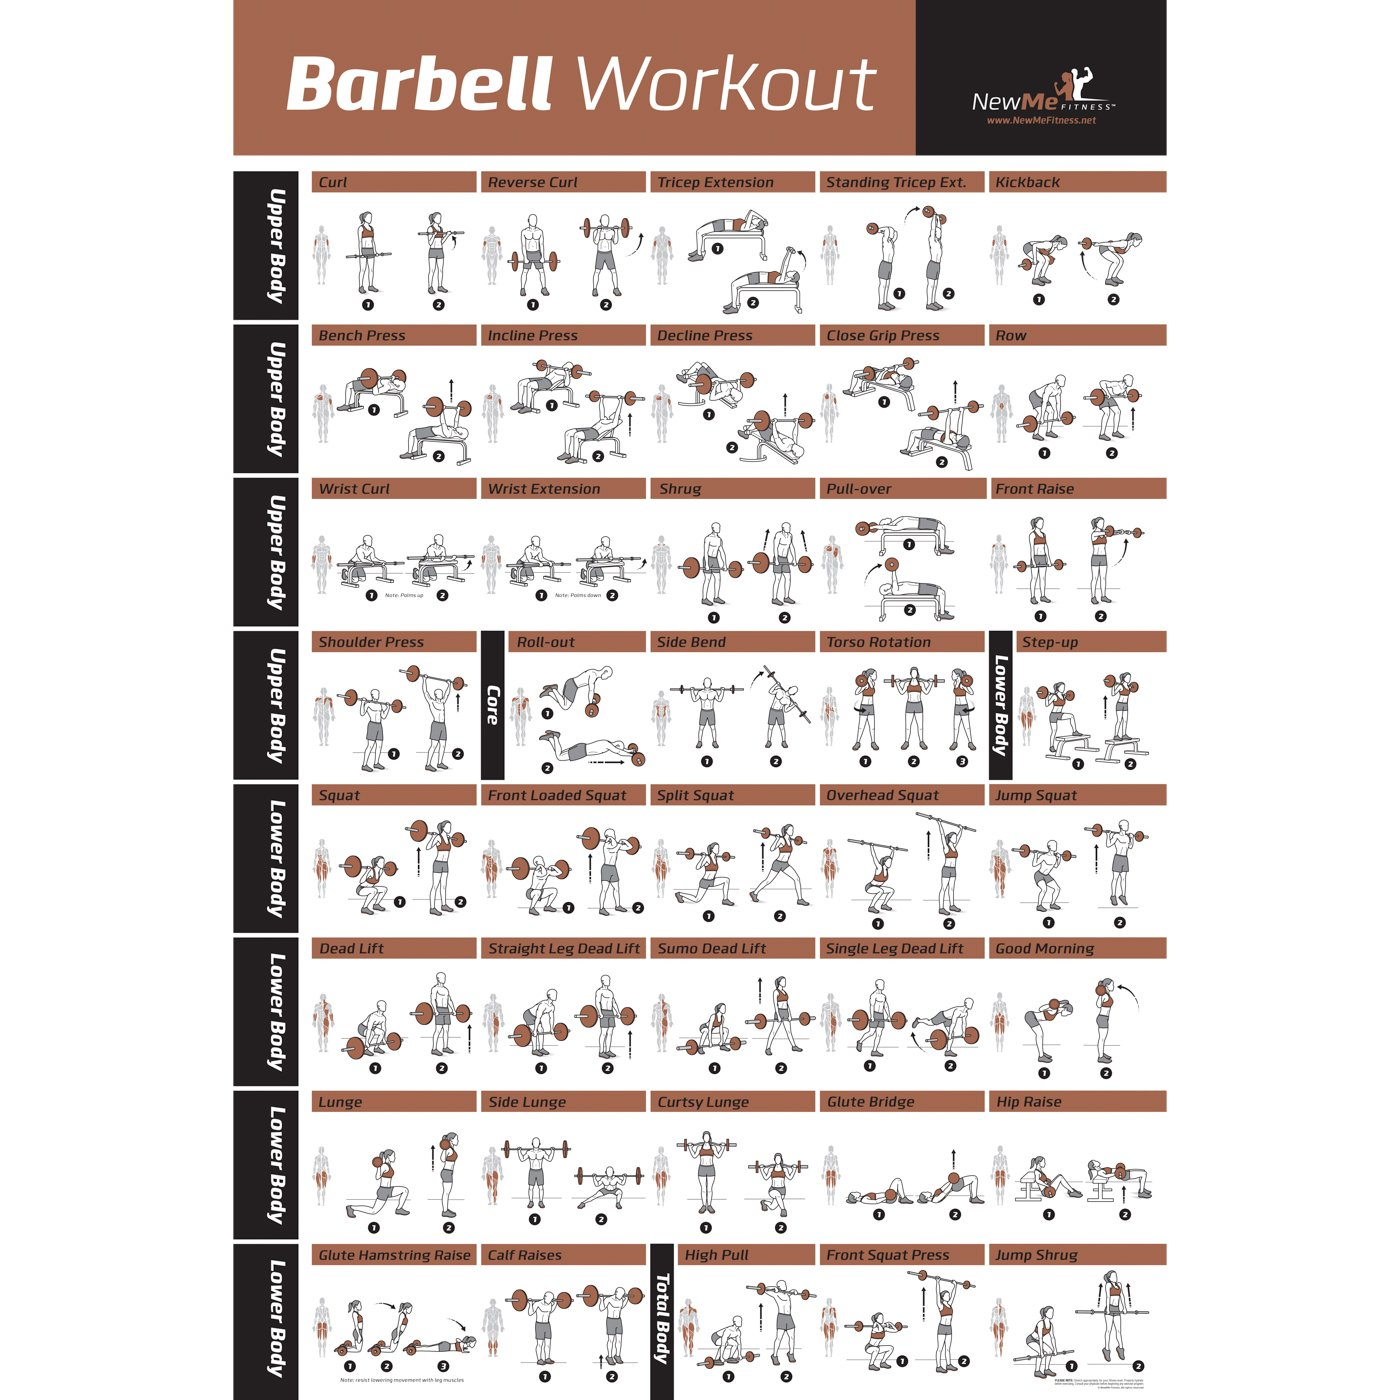 Barbell workout exercise poster laminated home gym weight barbell workout exercise poster laminated home gym weight lifting chart build muscle tone tighten strength training routine body building guide w nvjuhfo Gallery